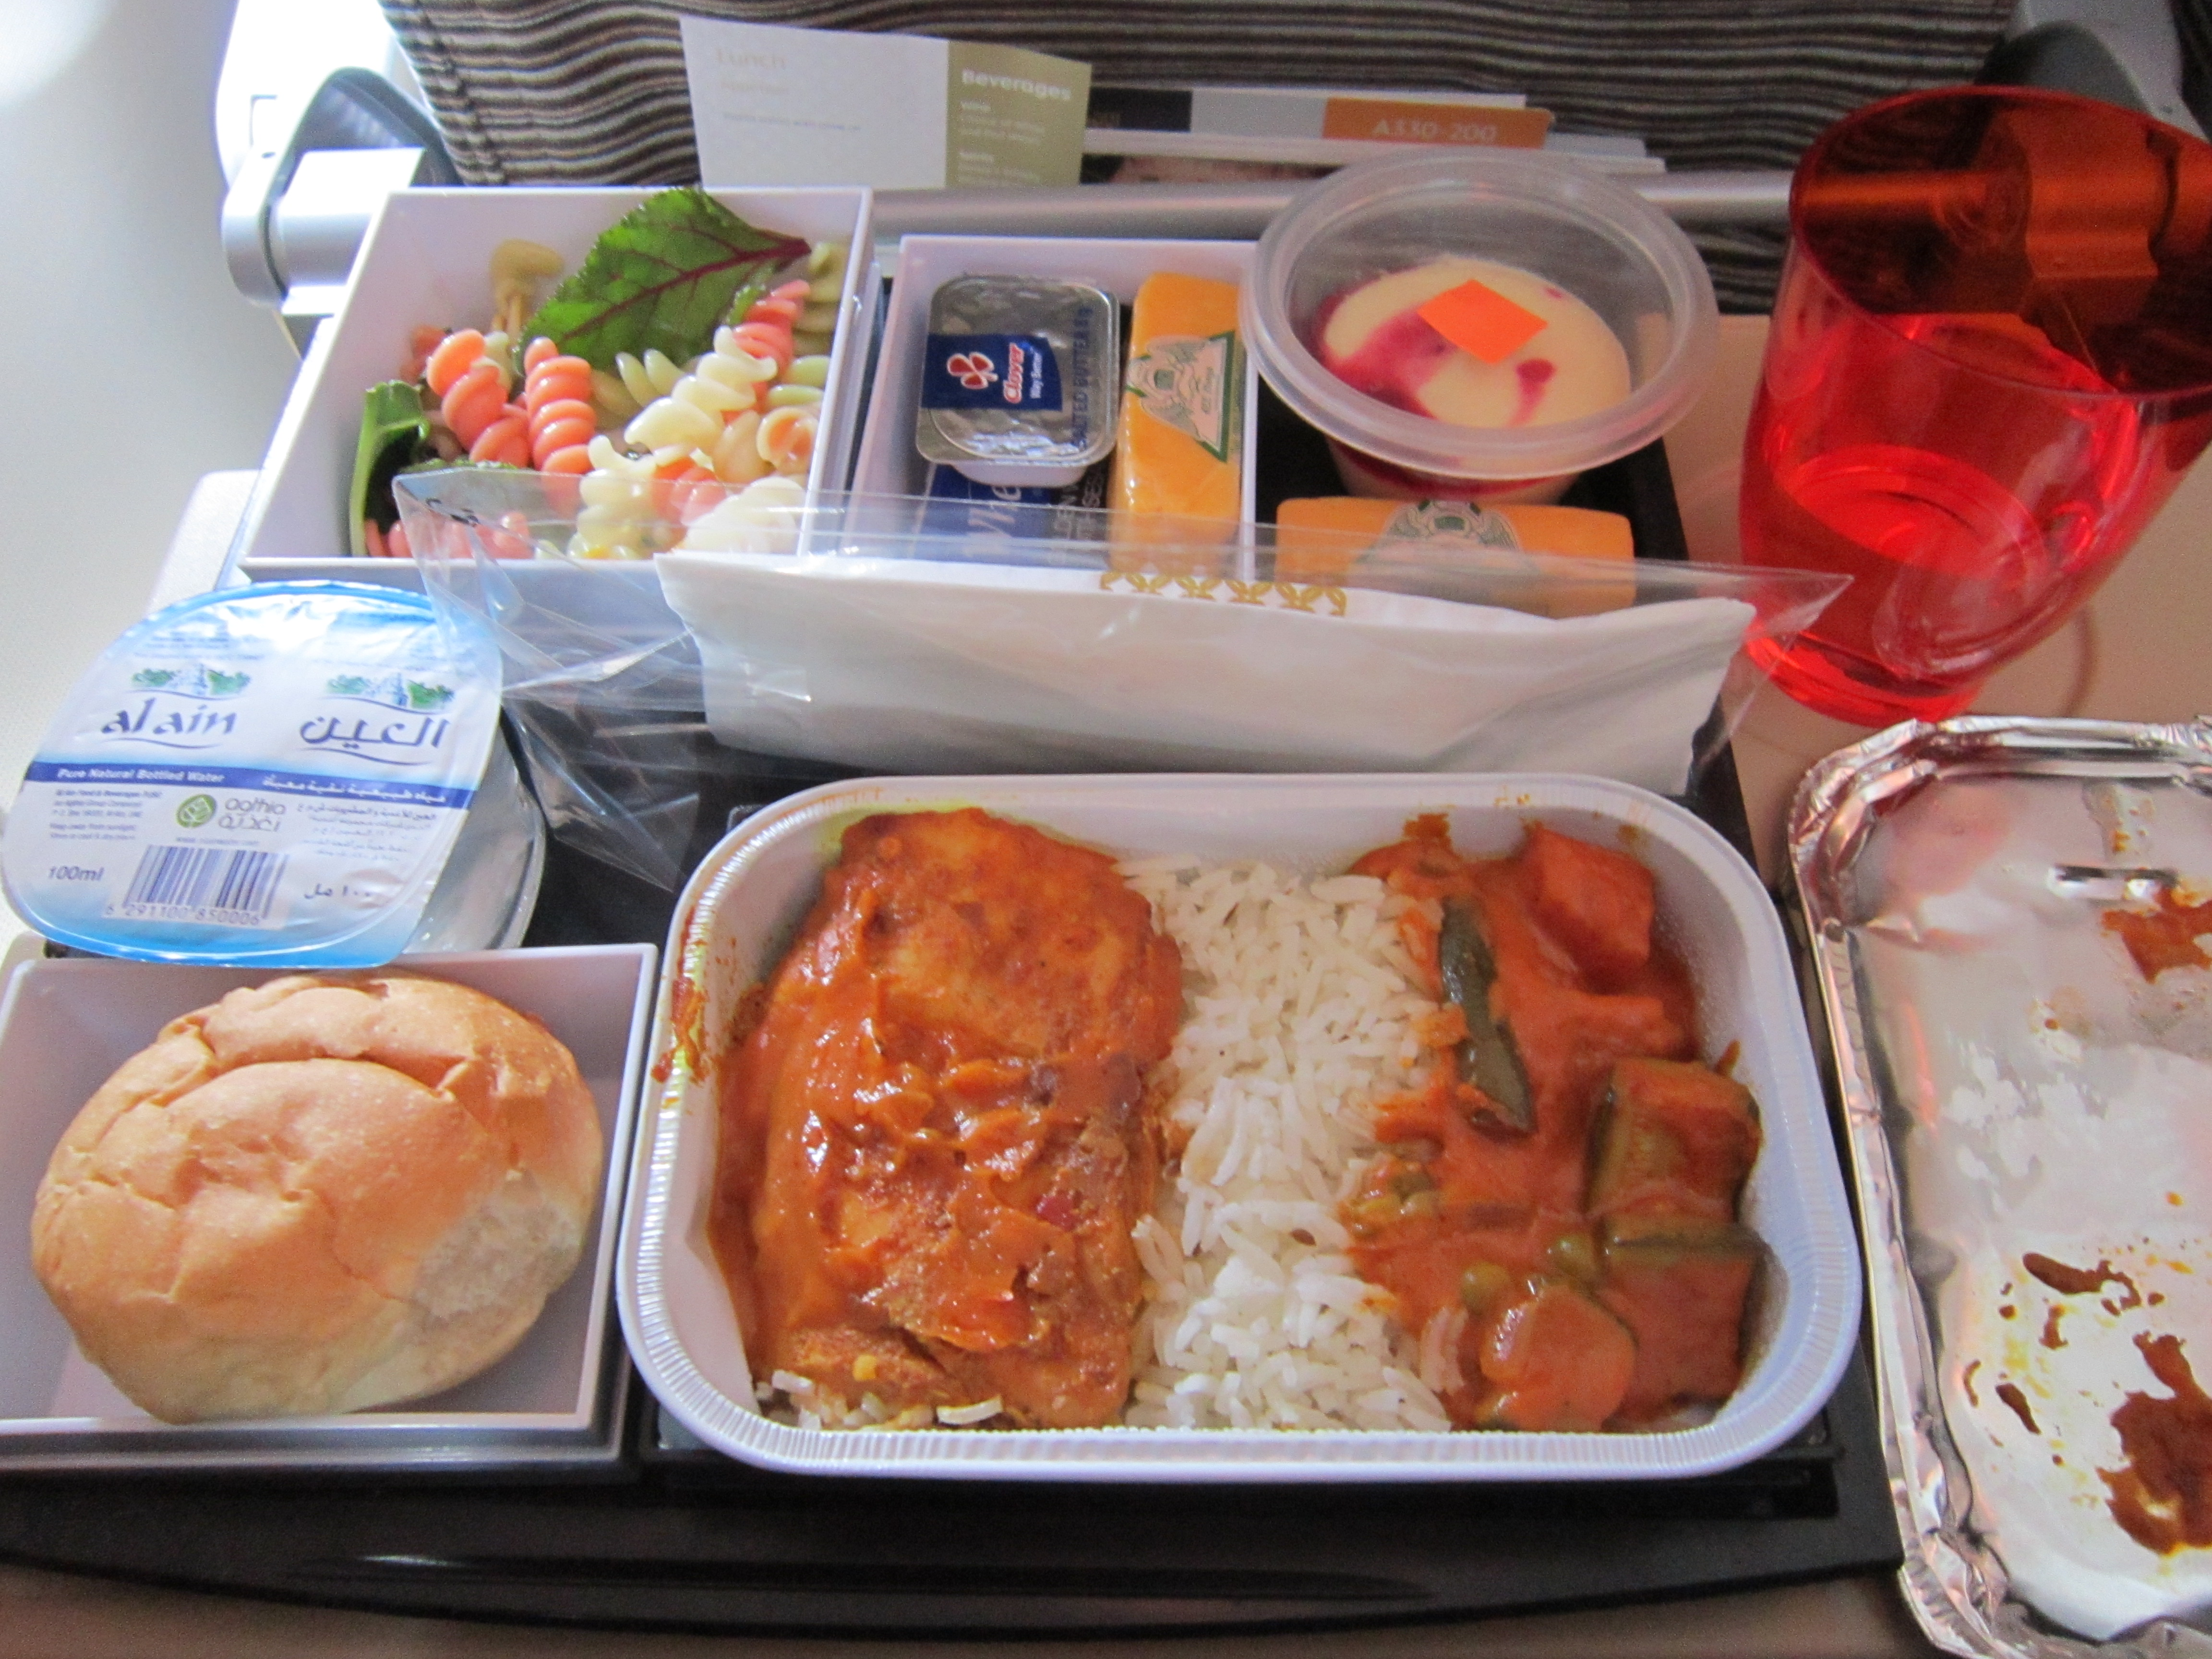 Pic my etihad pearl business class seat 9h on b777 300er may 2012 - Etihad Airline Economy Class Meal